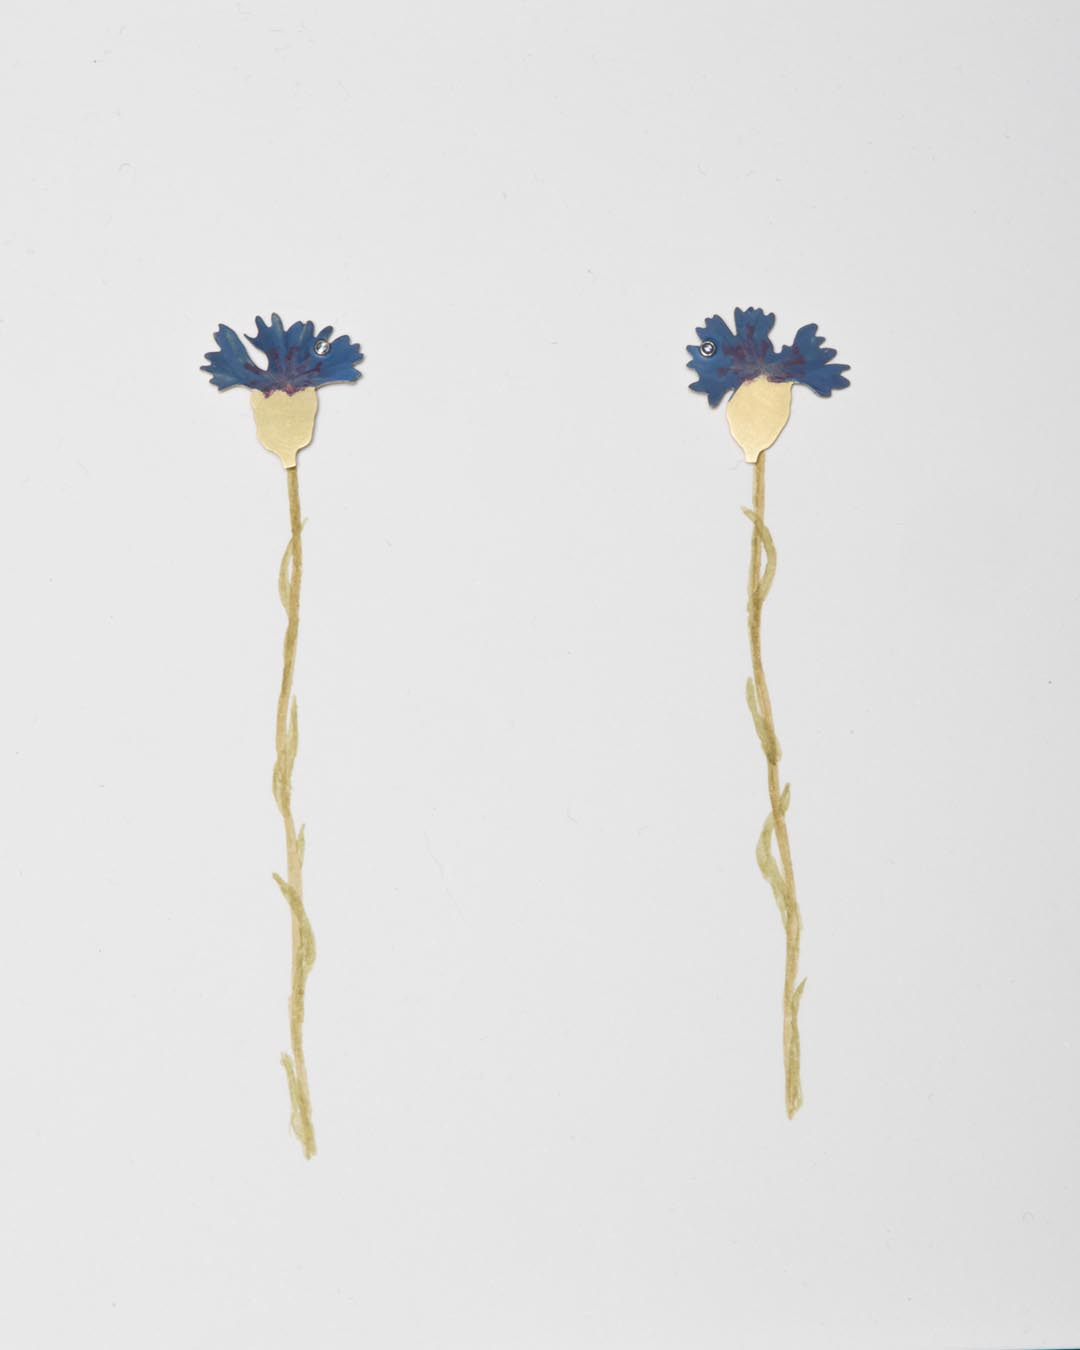 Christopher Thompson Royds, Natura Morta: cornflowers, 2019, stud earrings; 18ct gold, hand-painted, diamonds, 20 x 20 mm, €1150 (image 2/2)